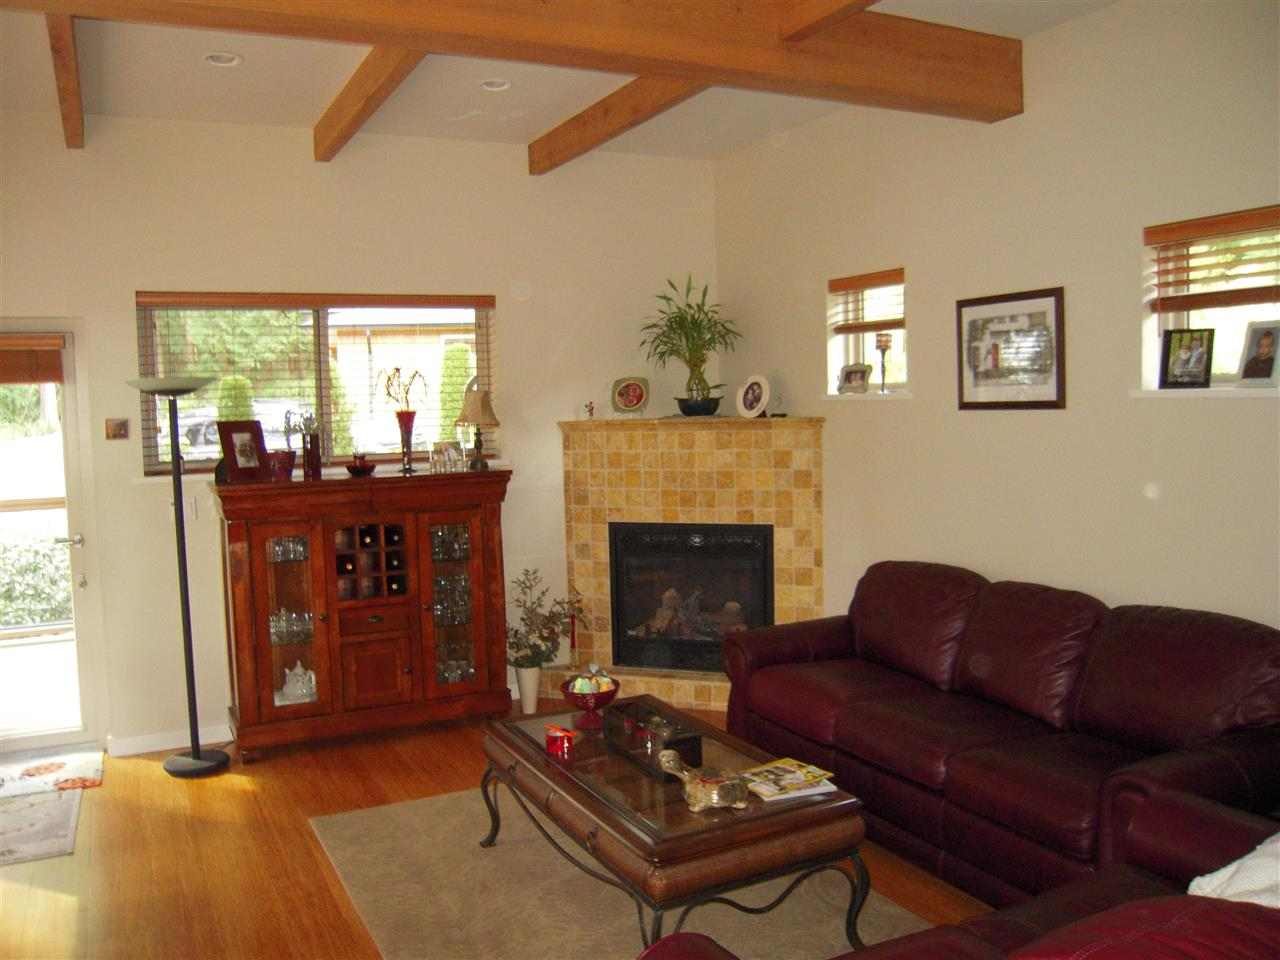 Photo 3: 5447 WAKEFIELD ROAD in Sechelt: Sechelt District House for sale (Sunshine Coast)  : MLS(r) # R2047962